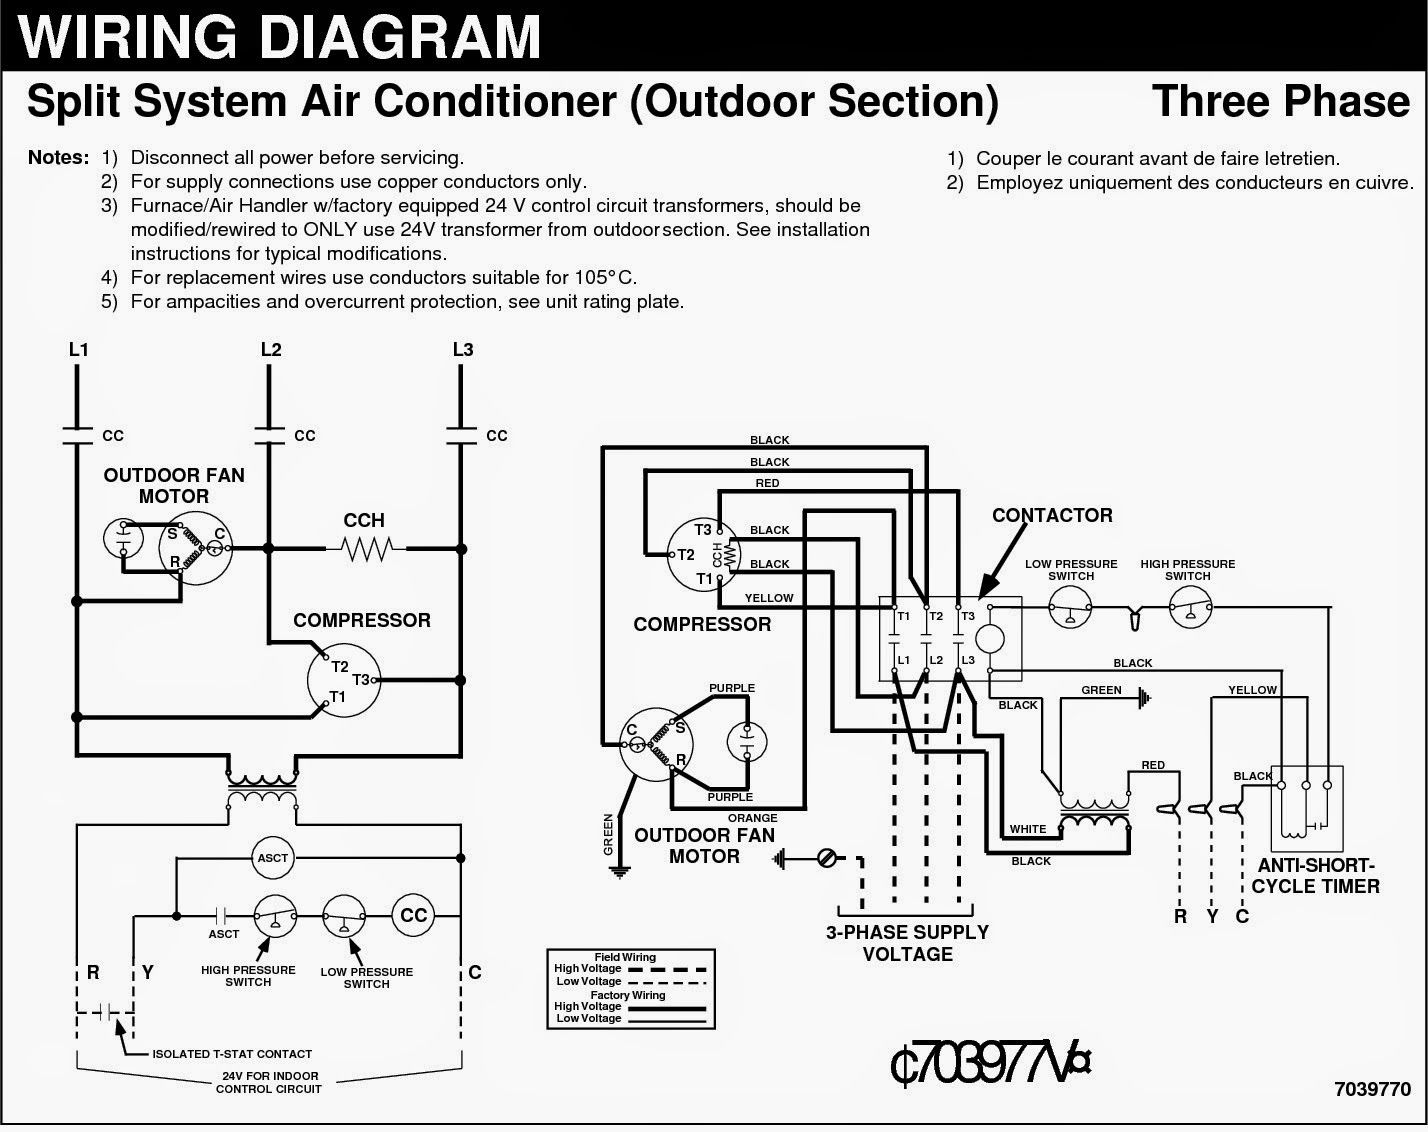 [DIAGRAM_38IS]  Air Compressor Wiring Diagram Schematic | Wiring Diagram | Devilbiss Wiring Diagram |  | Wiring Diagram - AutoScout24